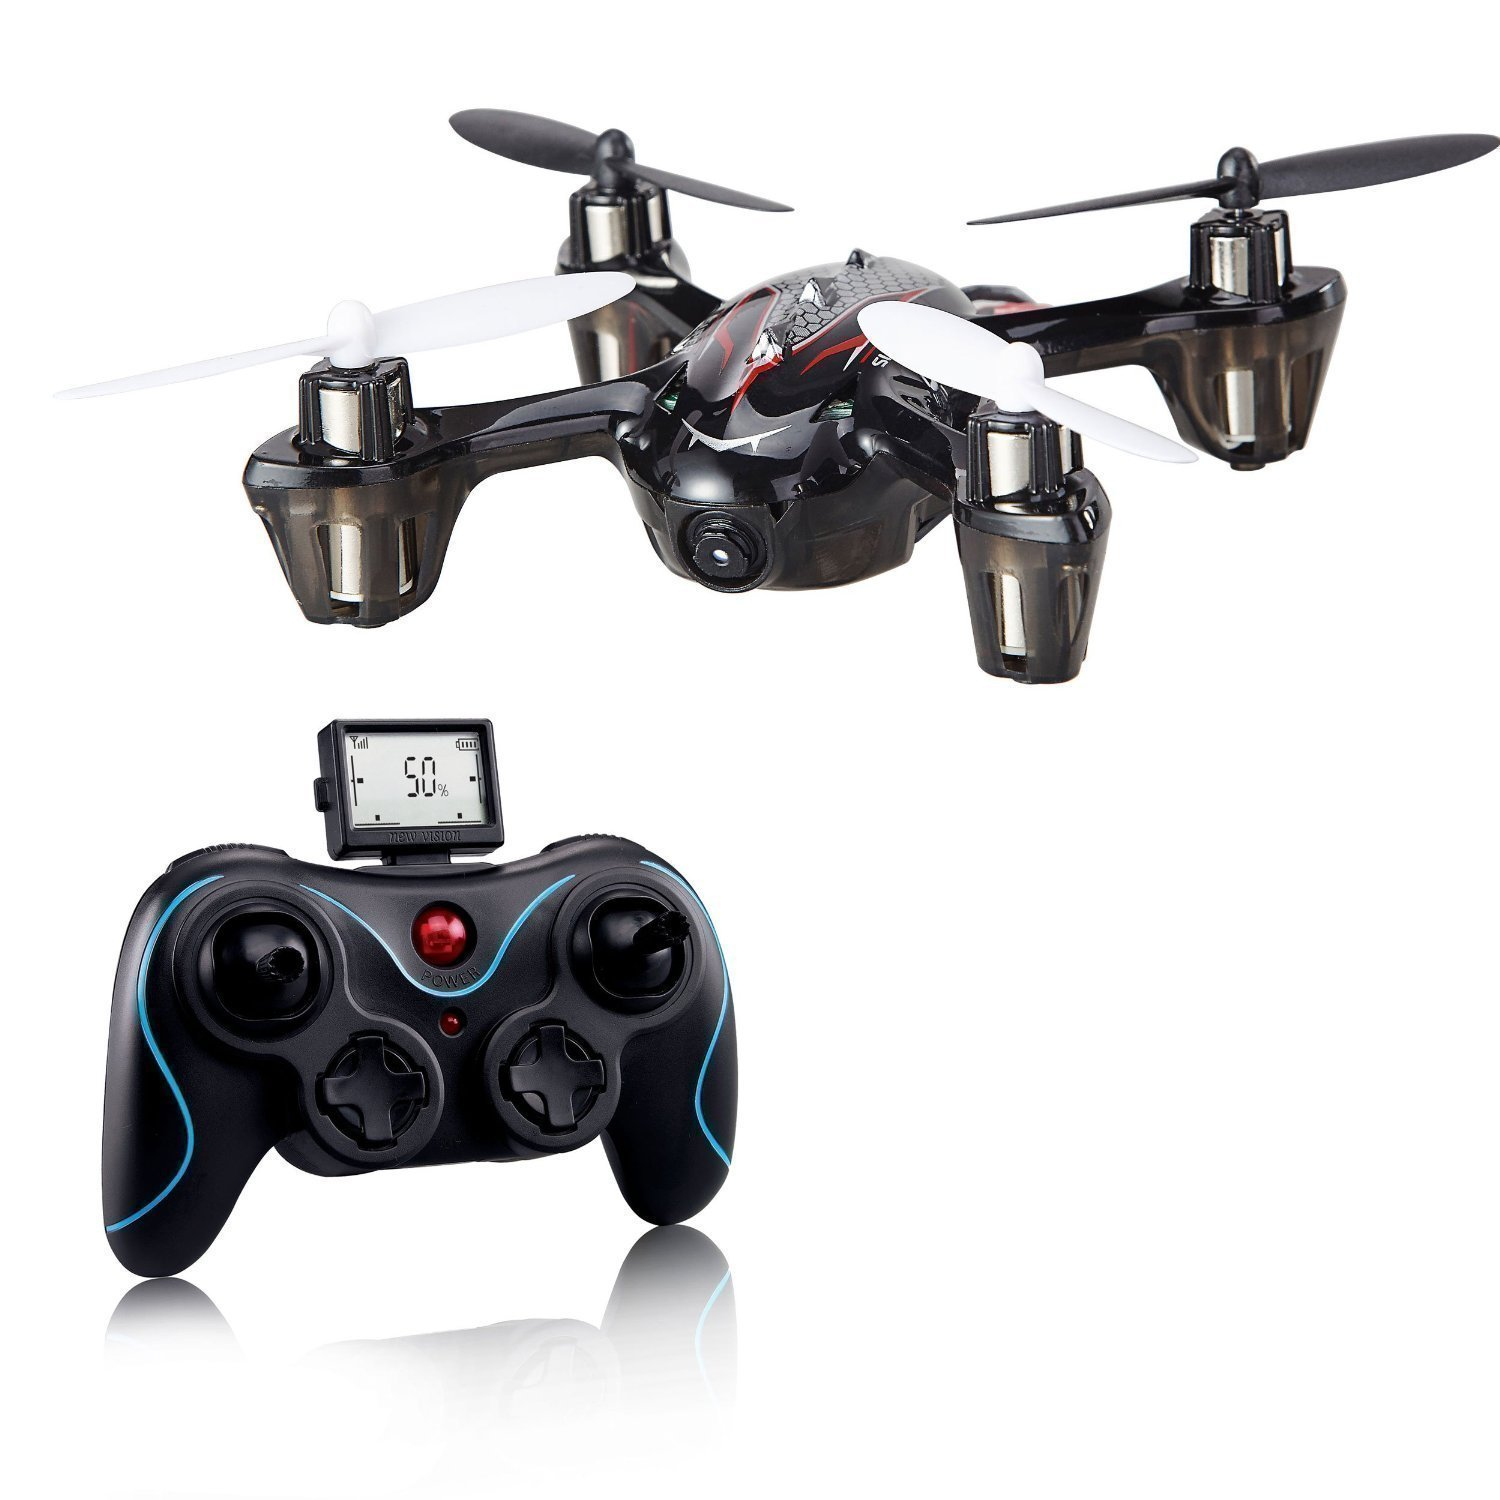 Amazon Holy Stone F180C Mini RC Quadcopter Drone With Camera 24GHz 6 Axis Gyro Bonus Battery And 8 Blades Toys Games